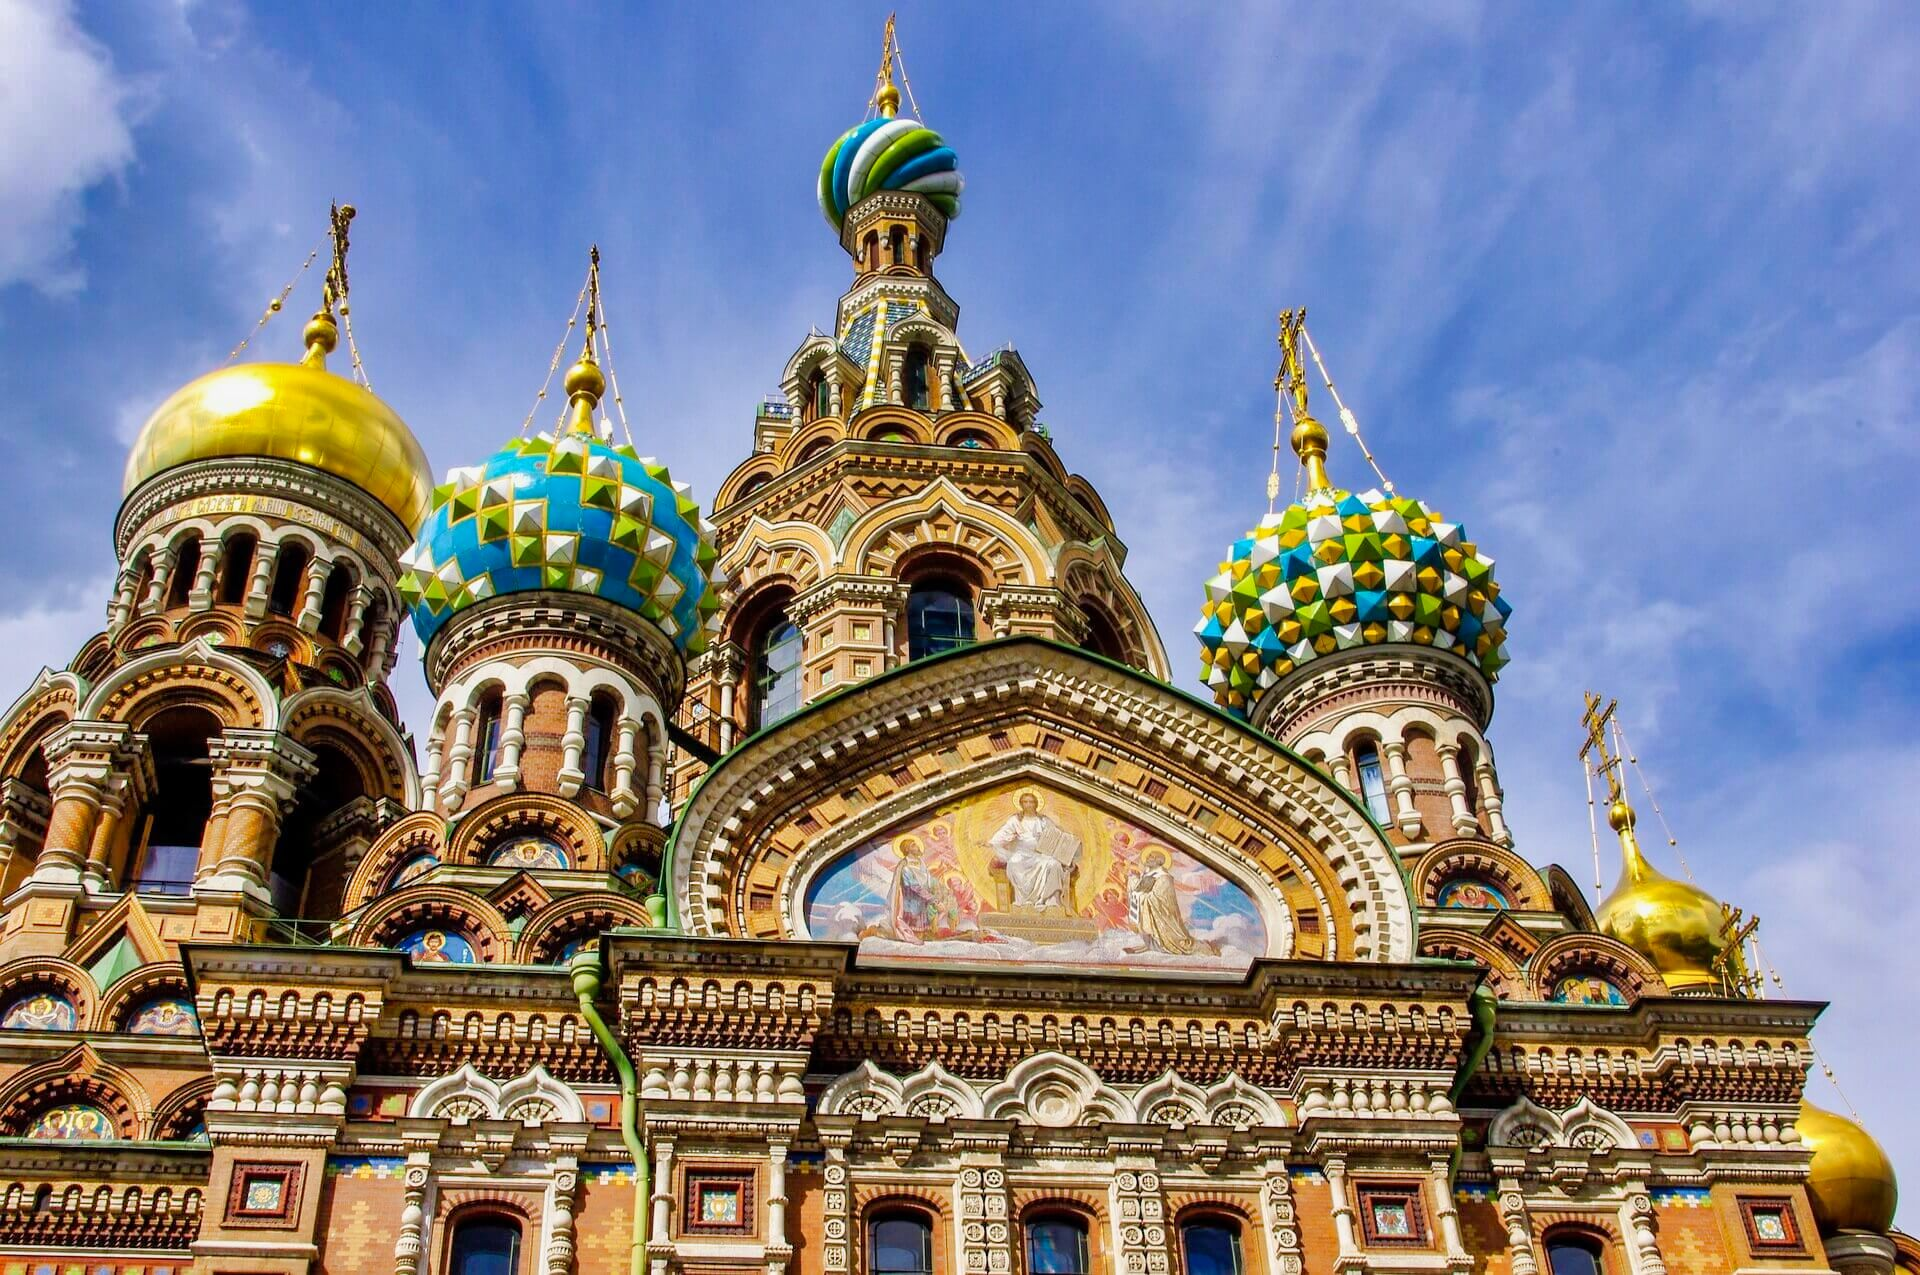 Saint Petersburg - The Church of the Savior on the Spilled Blood 2